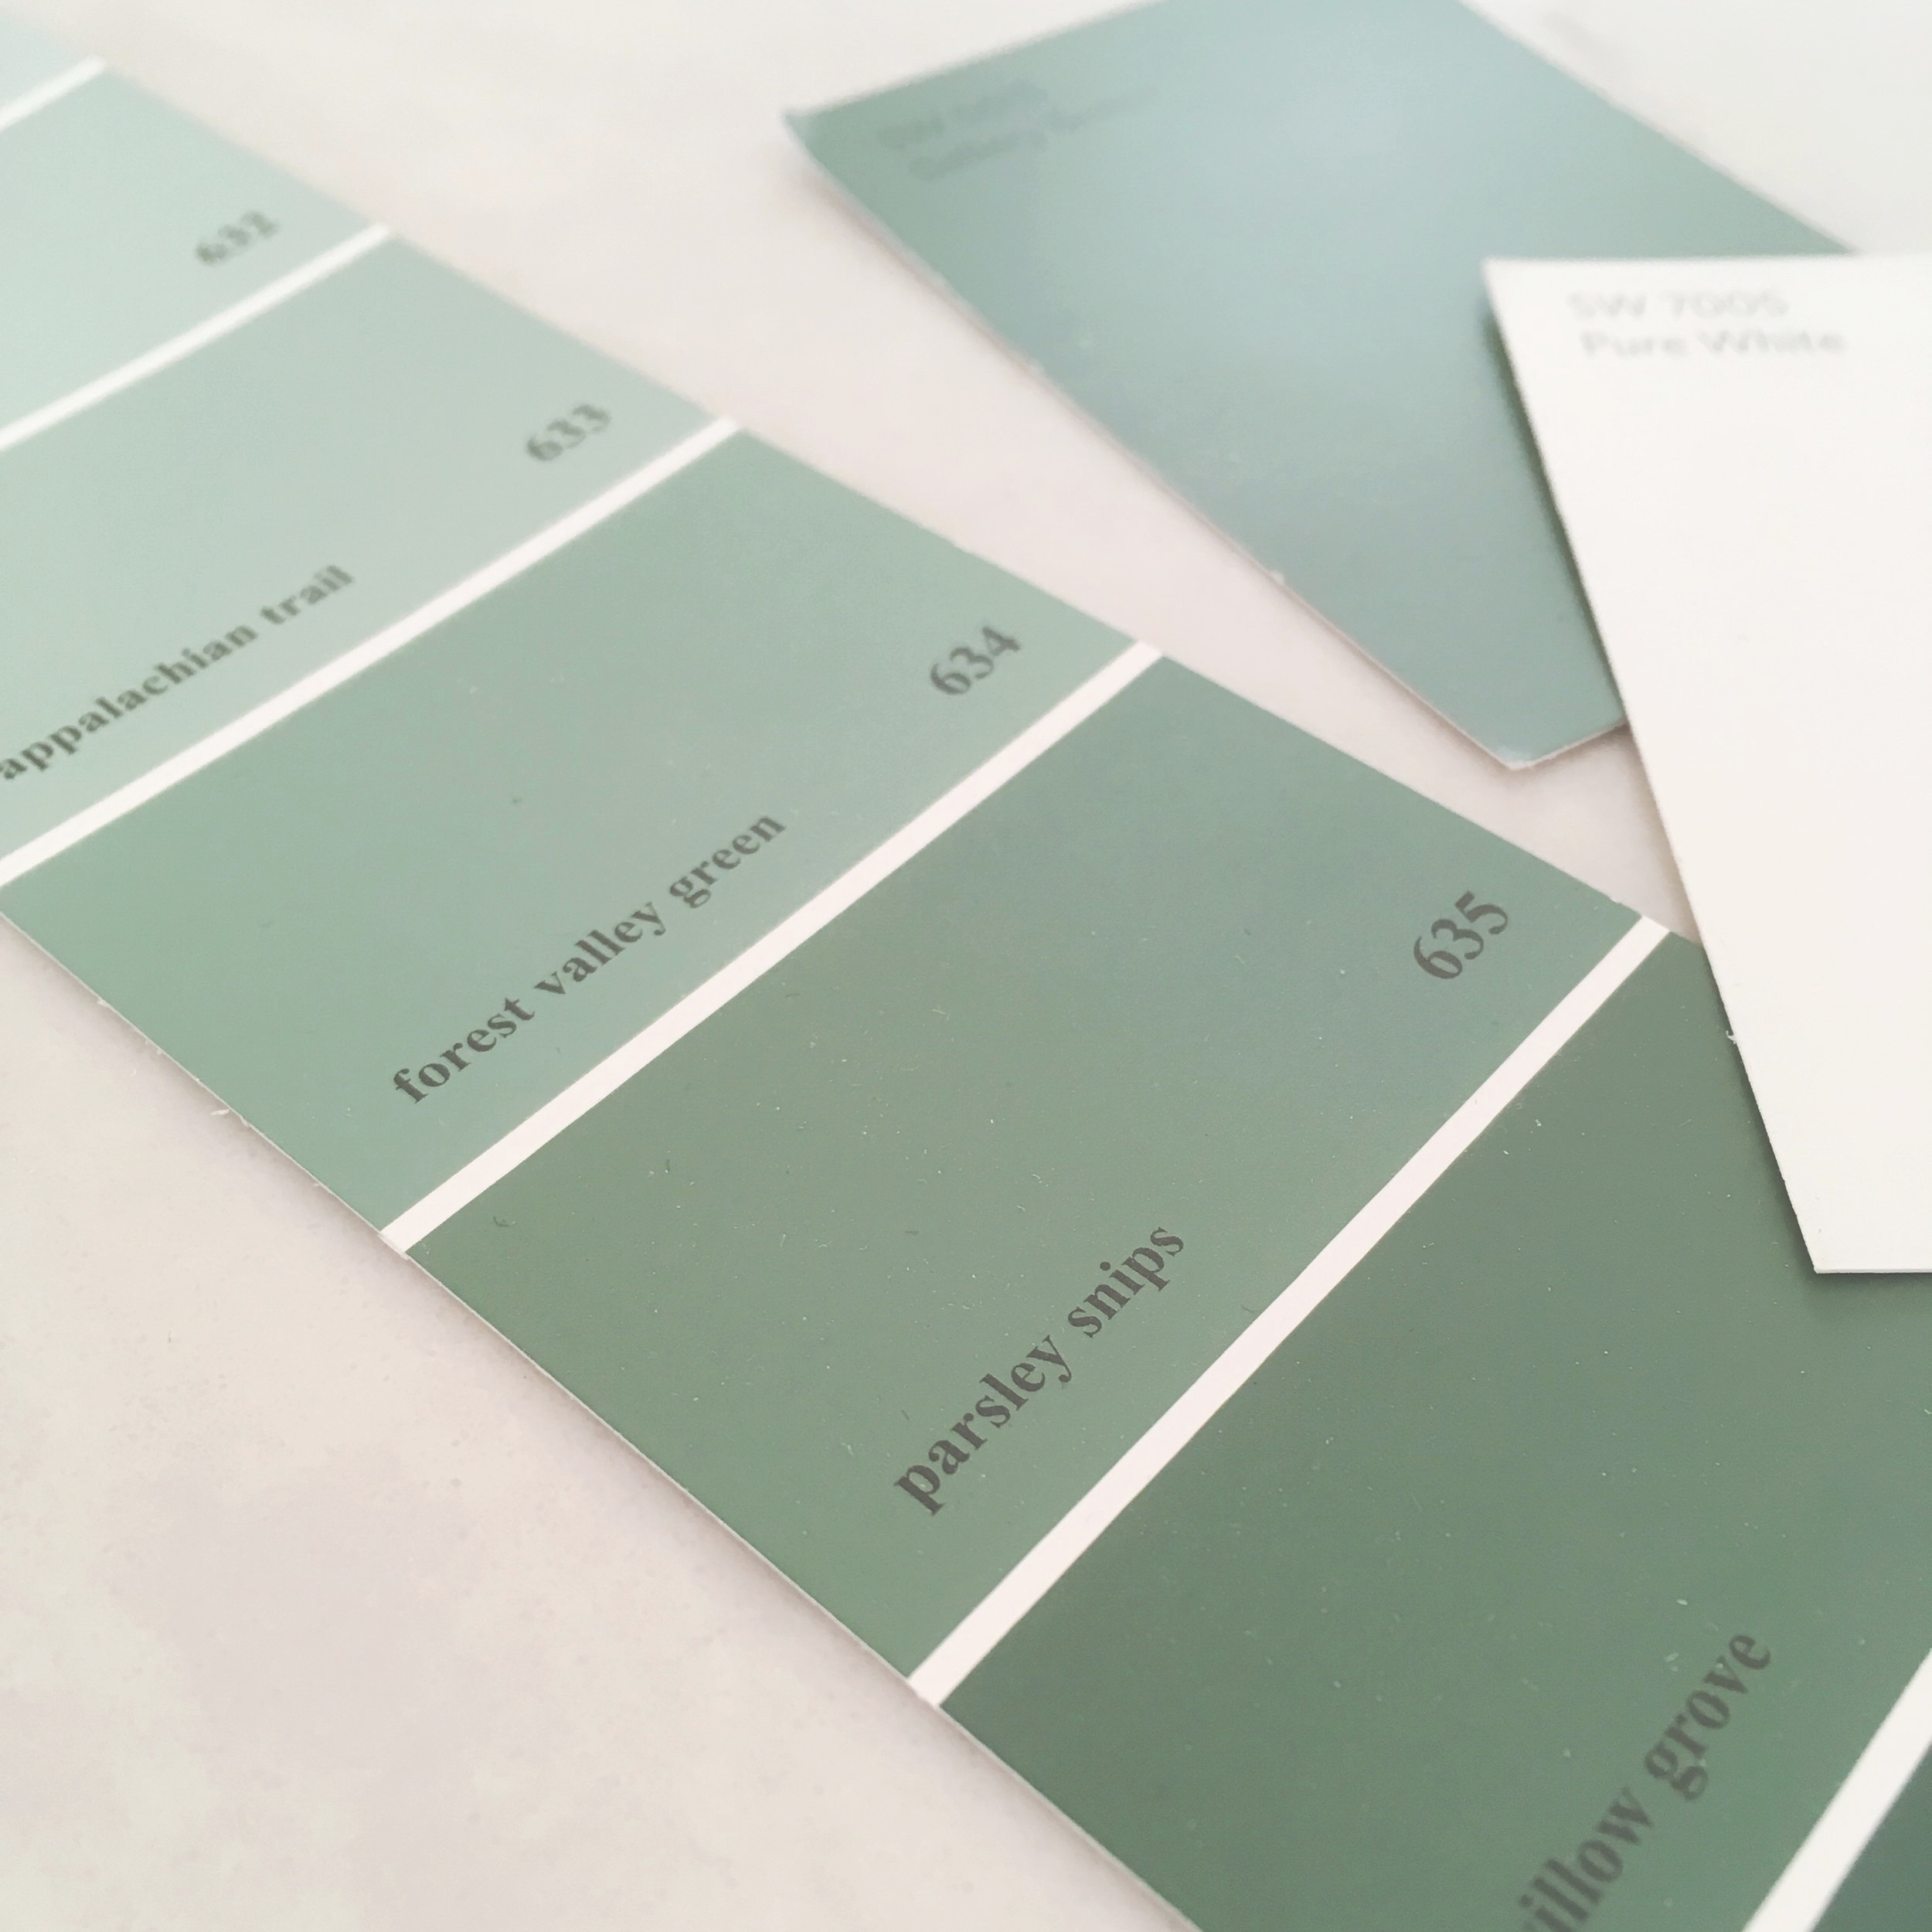 Benjamin Moore #635 Parsley Snips from the Classic Color Collection. Sherwin Williams SW0015 Gallery Green can be seen as the rectangular swatch in the top right.